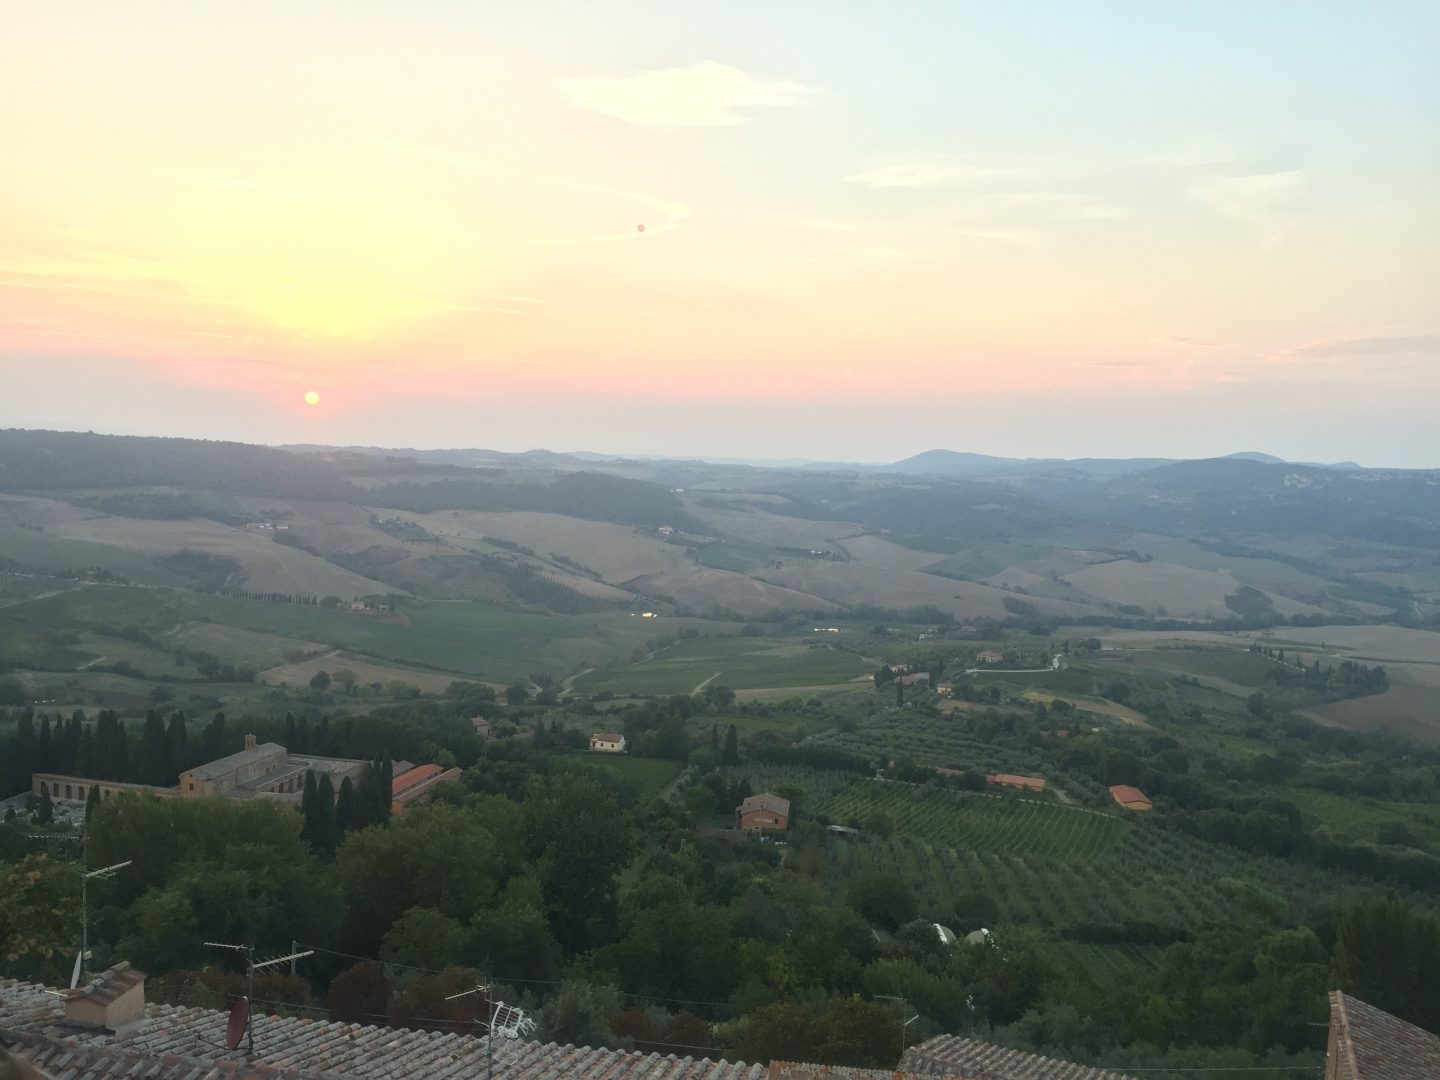 Honeymoon in the Tuscan Countryside